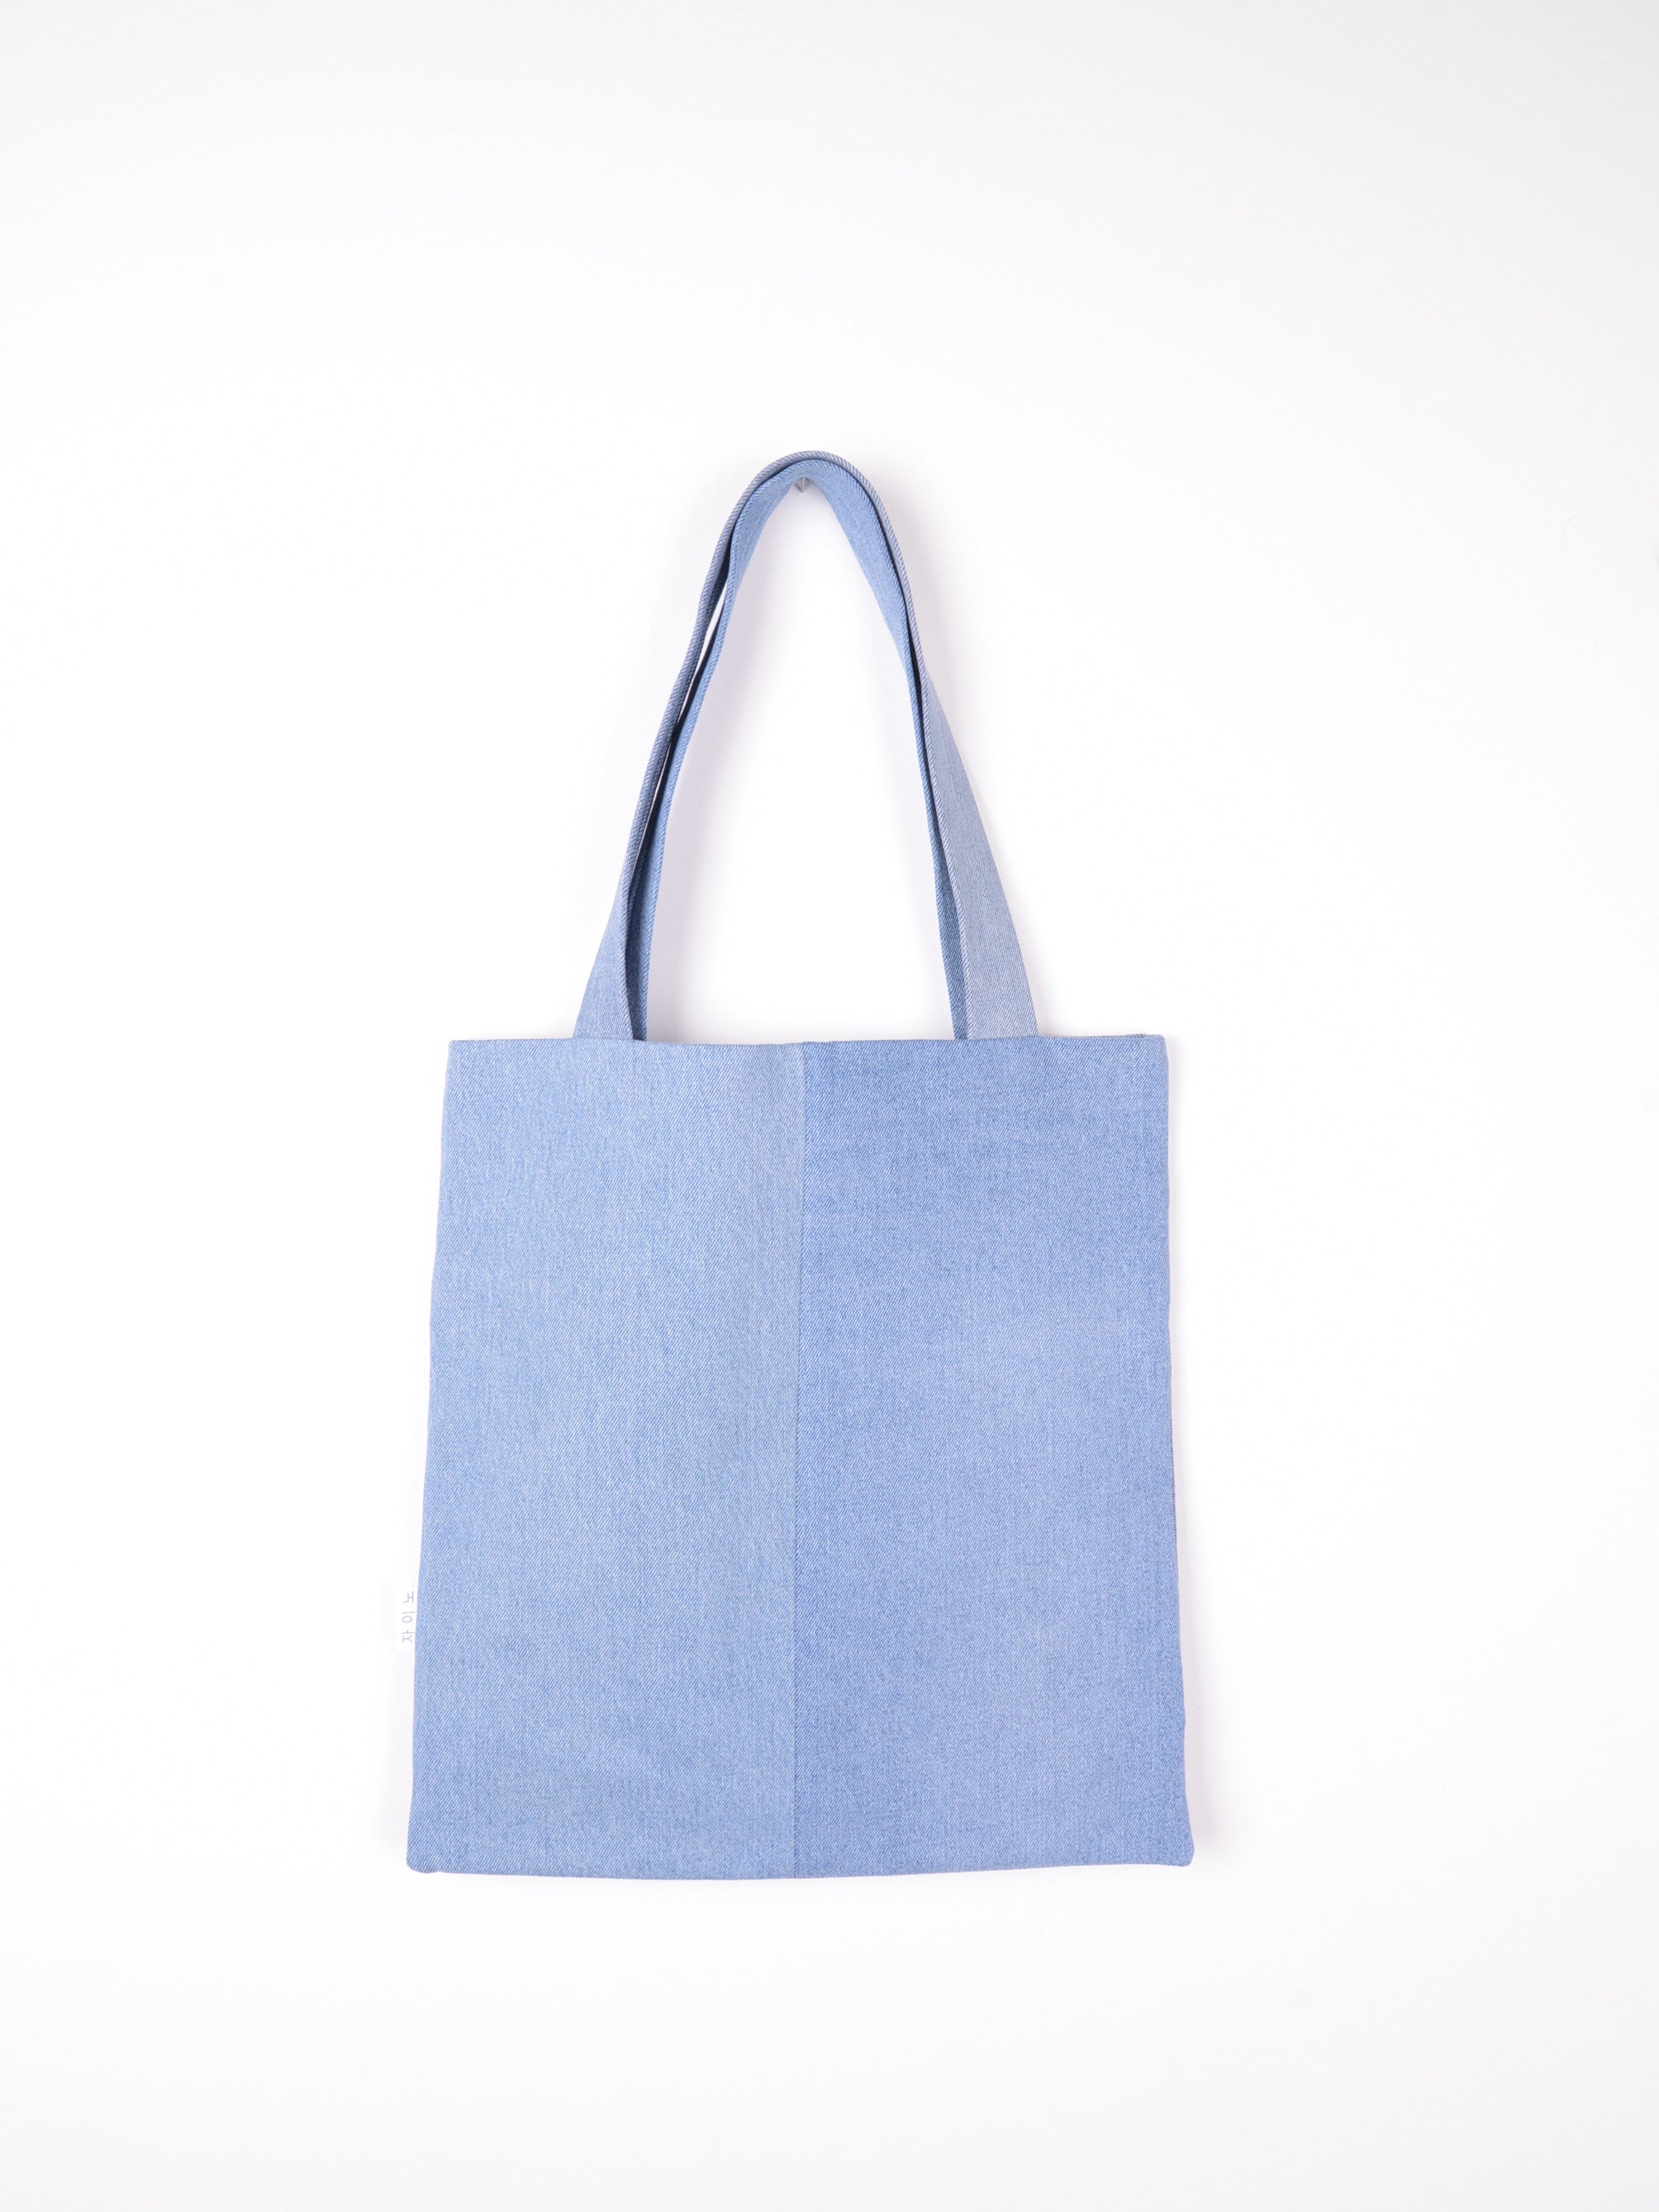 Tote Bag Lightblue